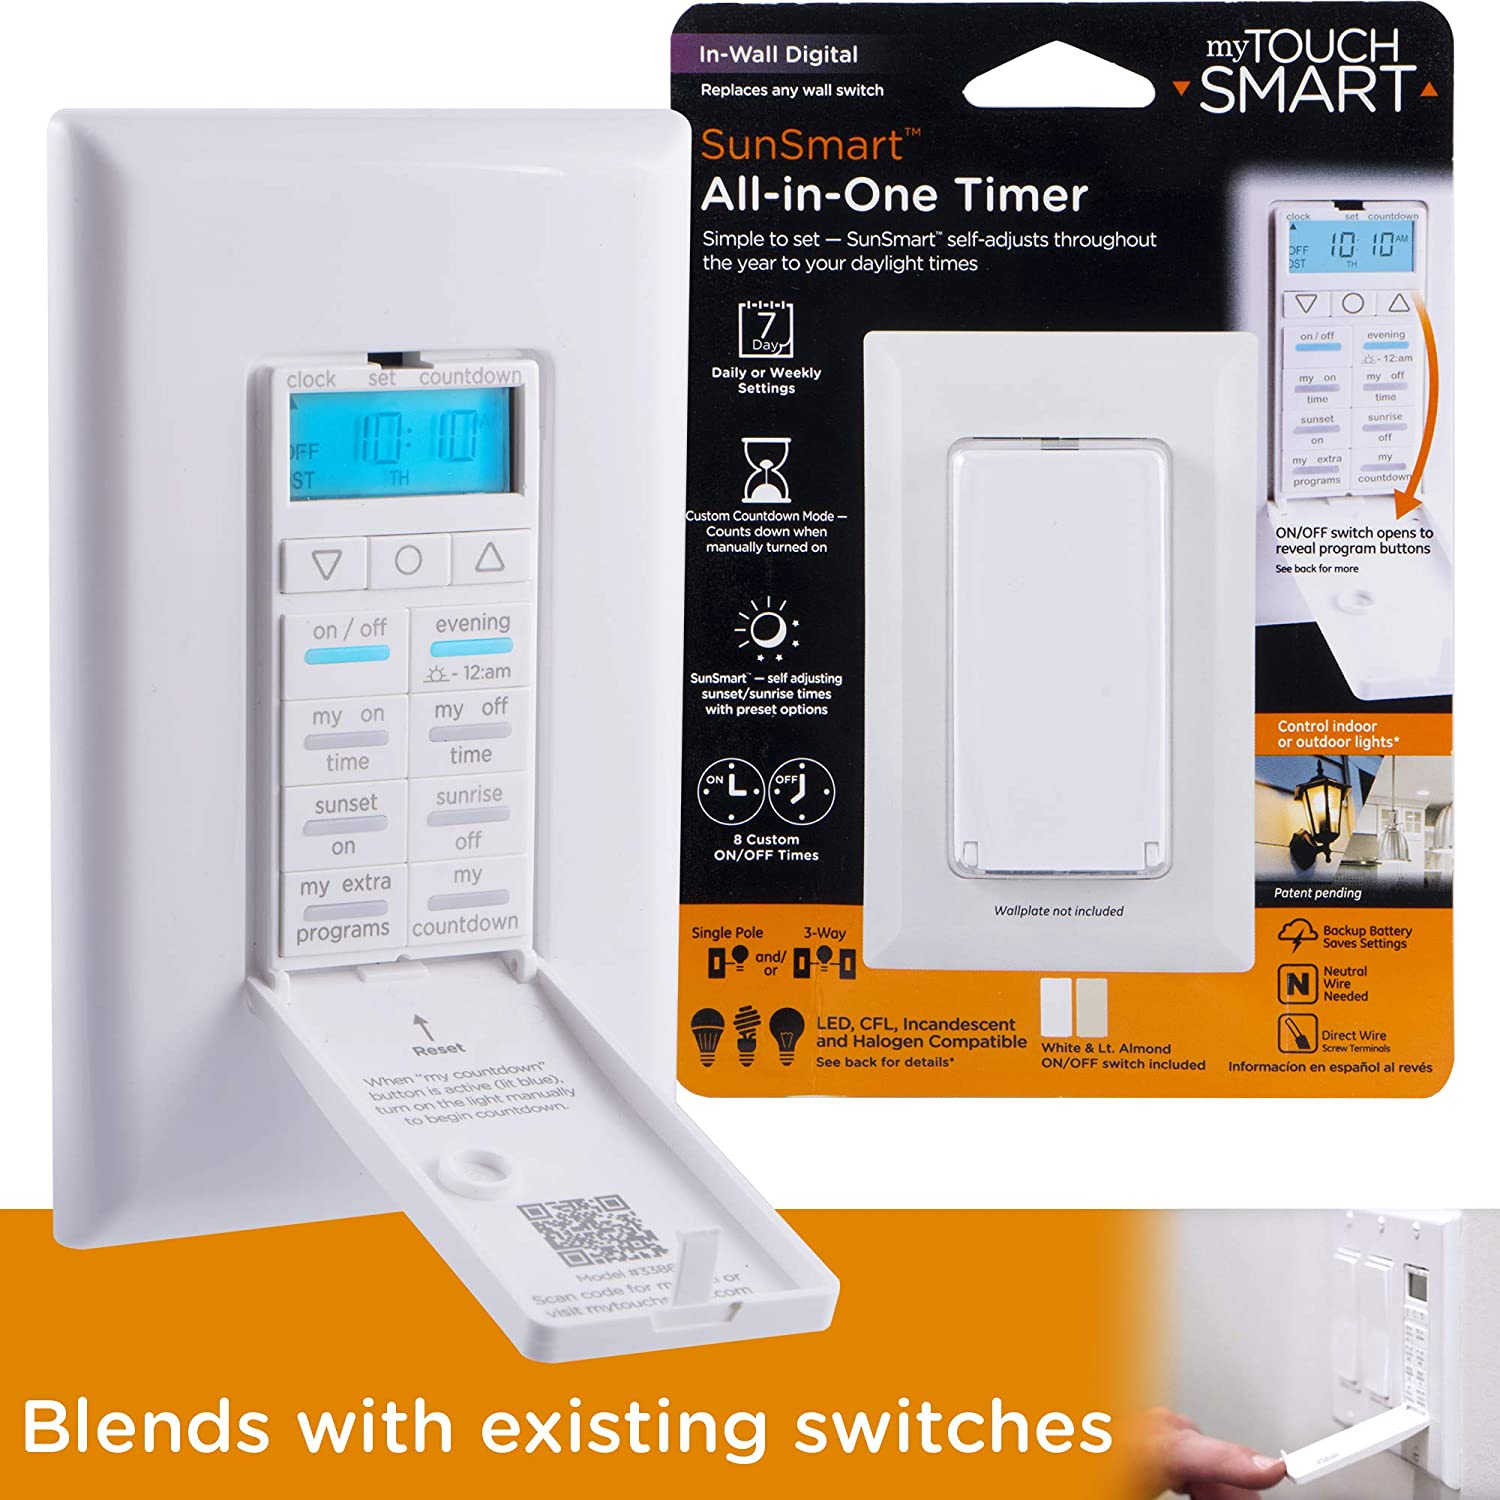 myTouchSmart LE One in-Wall Digital Timer, Push Door Switch, Backlit LED Screen, Times, Countdown Mode, Daily/Weekly Set, 8, 8 Custom On/Off & Countdown